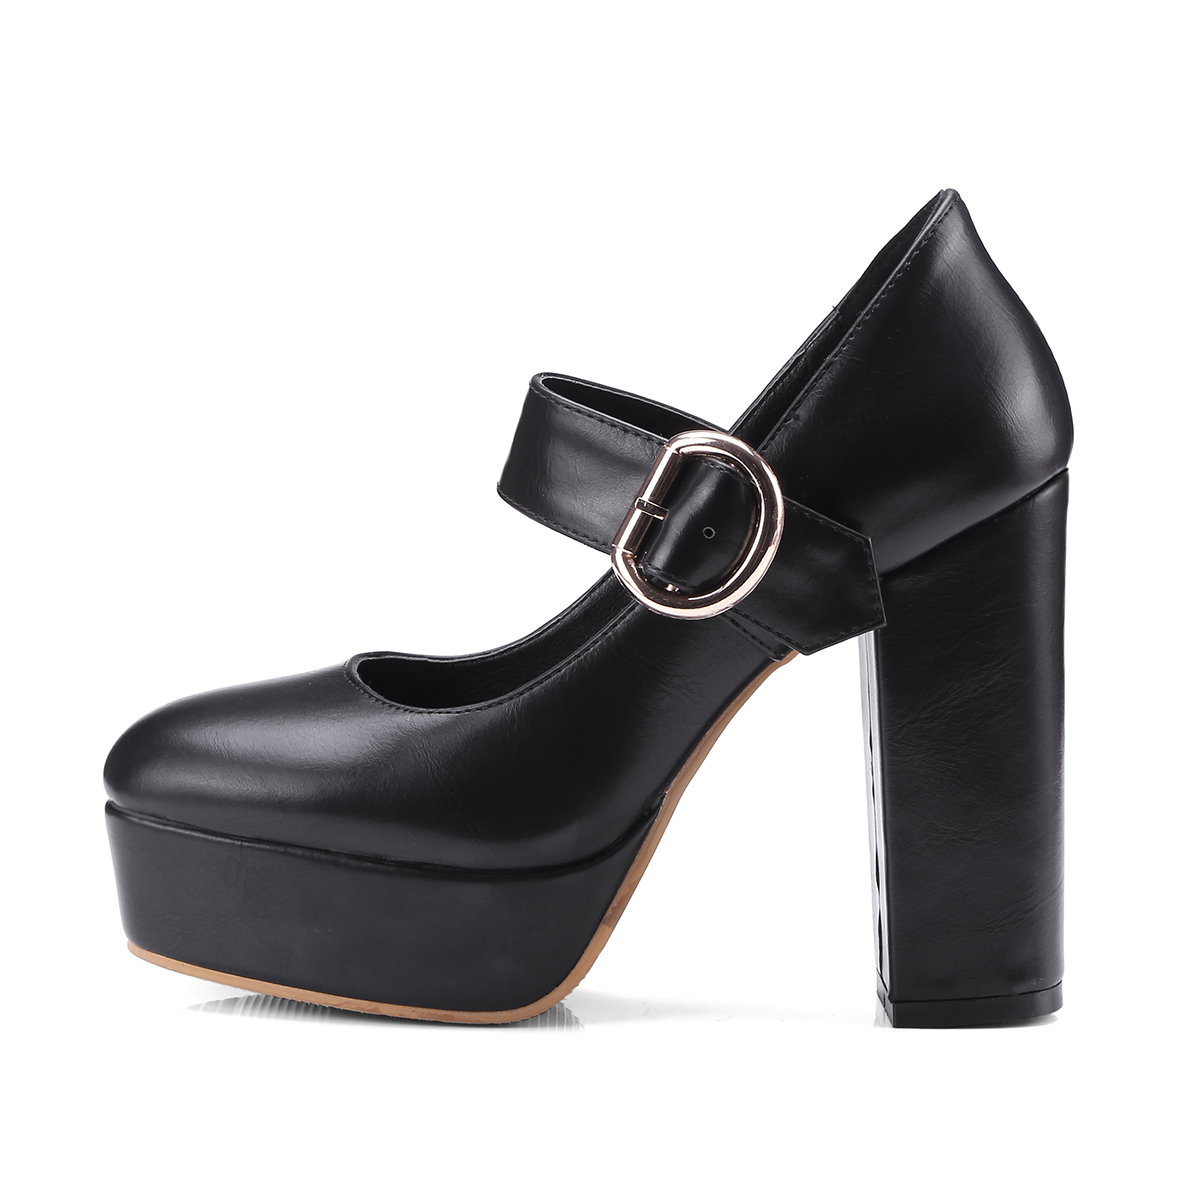 44ed114a0f9 US  45 - spring autumn small size chunky heels platform round toe high heels  big size pumps shoes woman - www.ardenfurtado.com